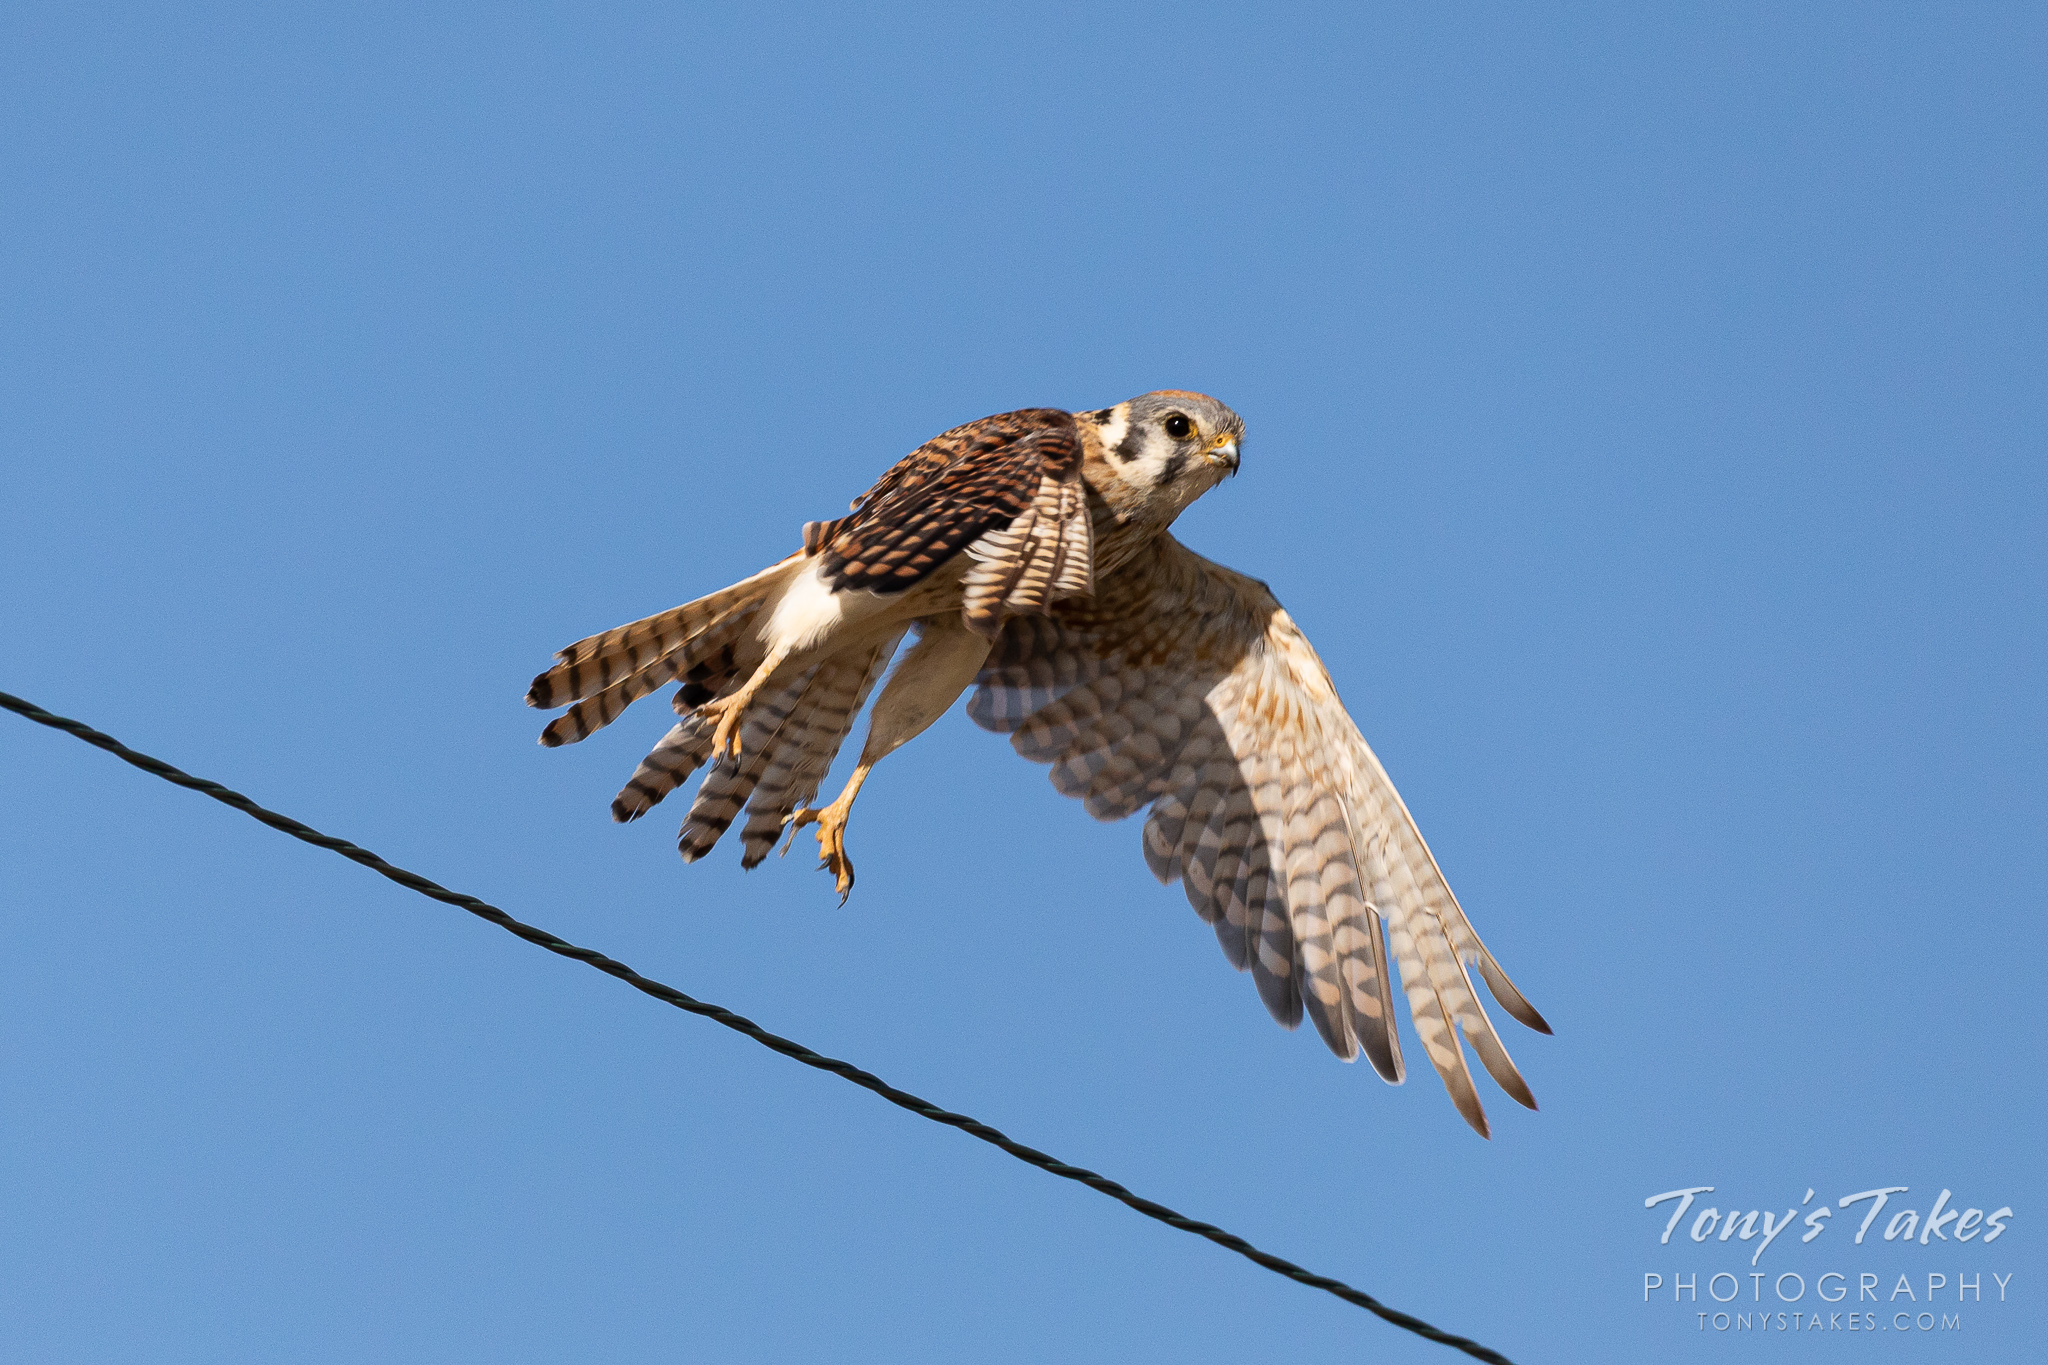 A female American kestrel takes to the skies. (© Tony's Takes)